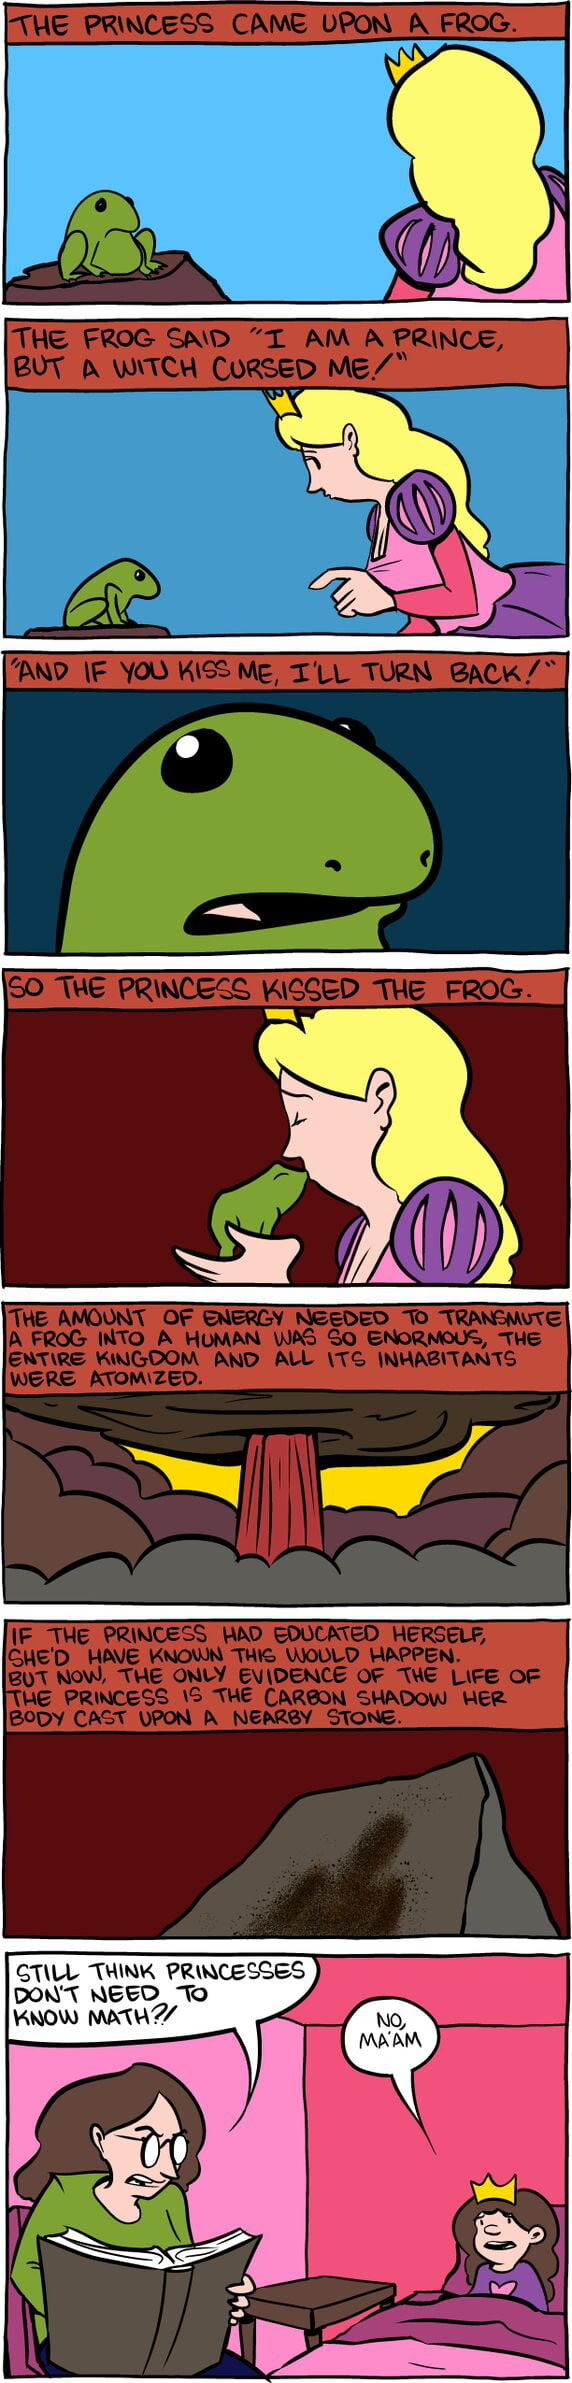 Energy needed to transform the frog into a prince (SMBC Comic)